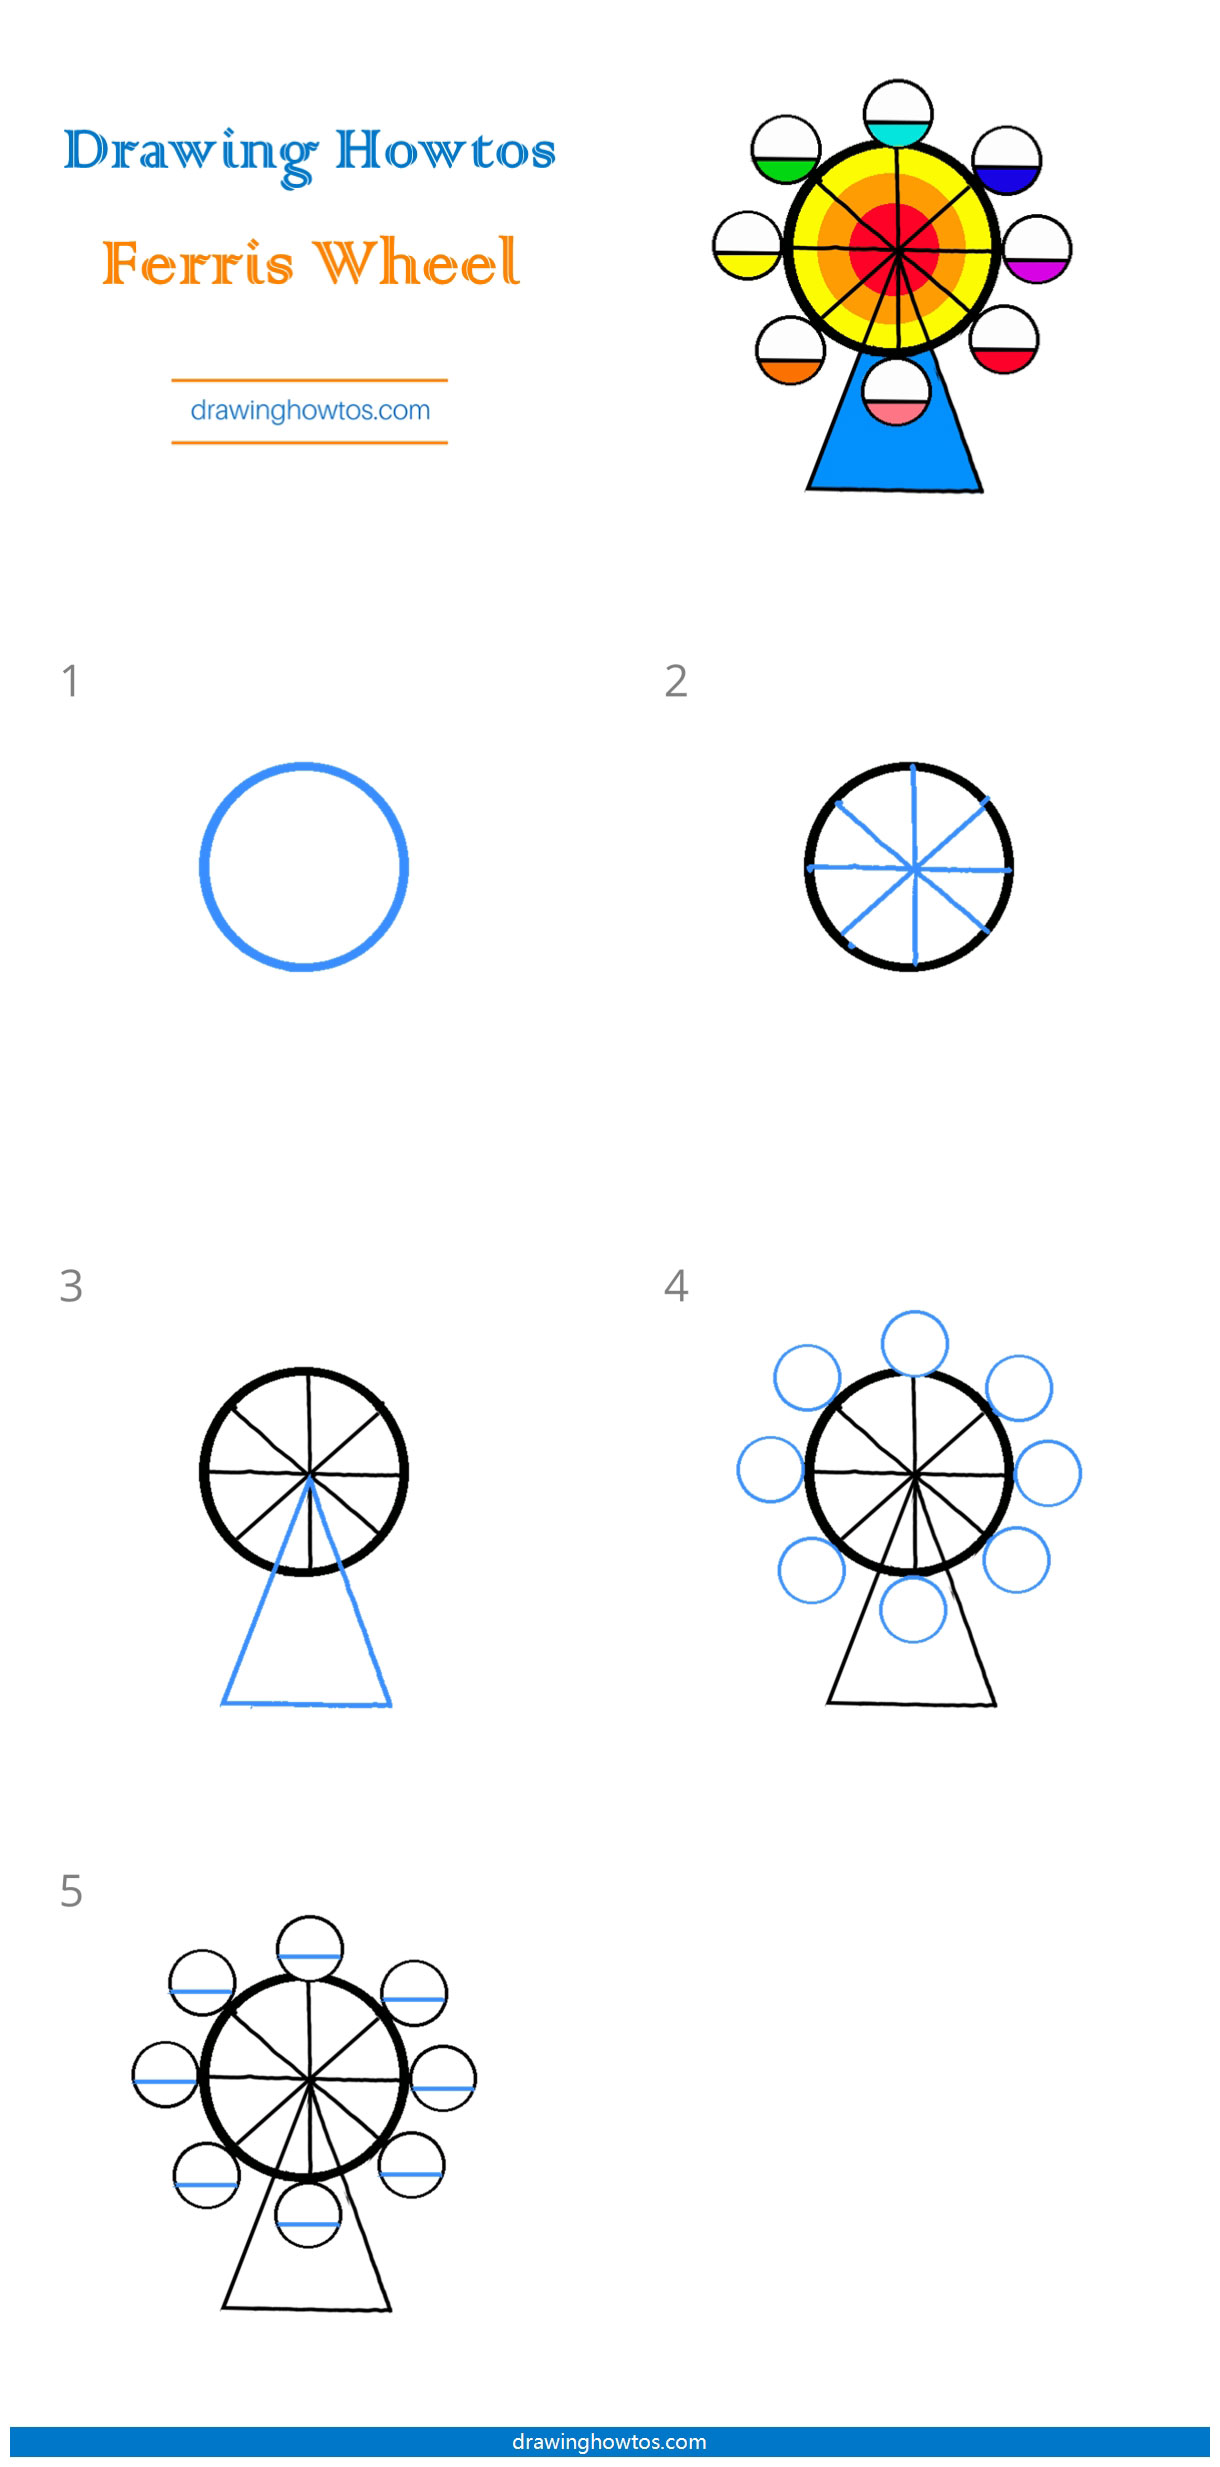 How To Draw A Ferris Wheel Step By Step Easy Drawing Guides Drawing Howtos